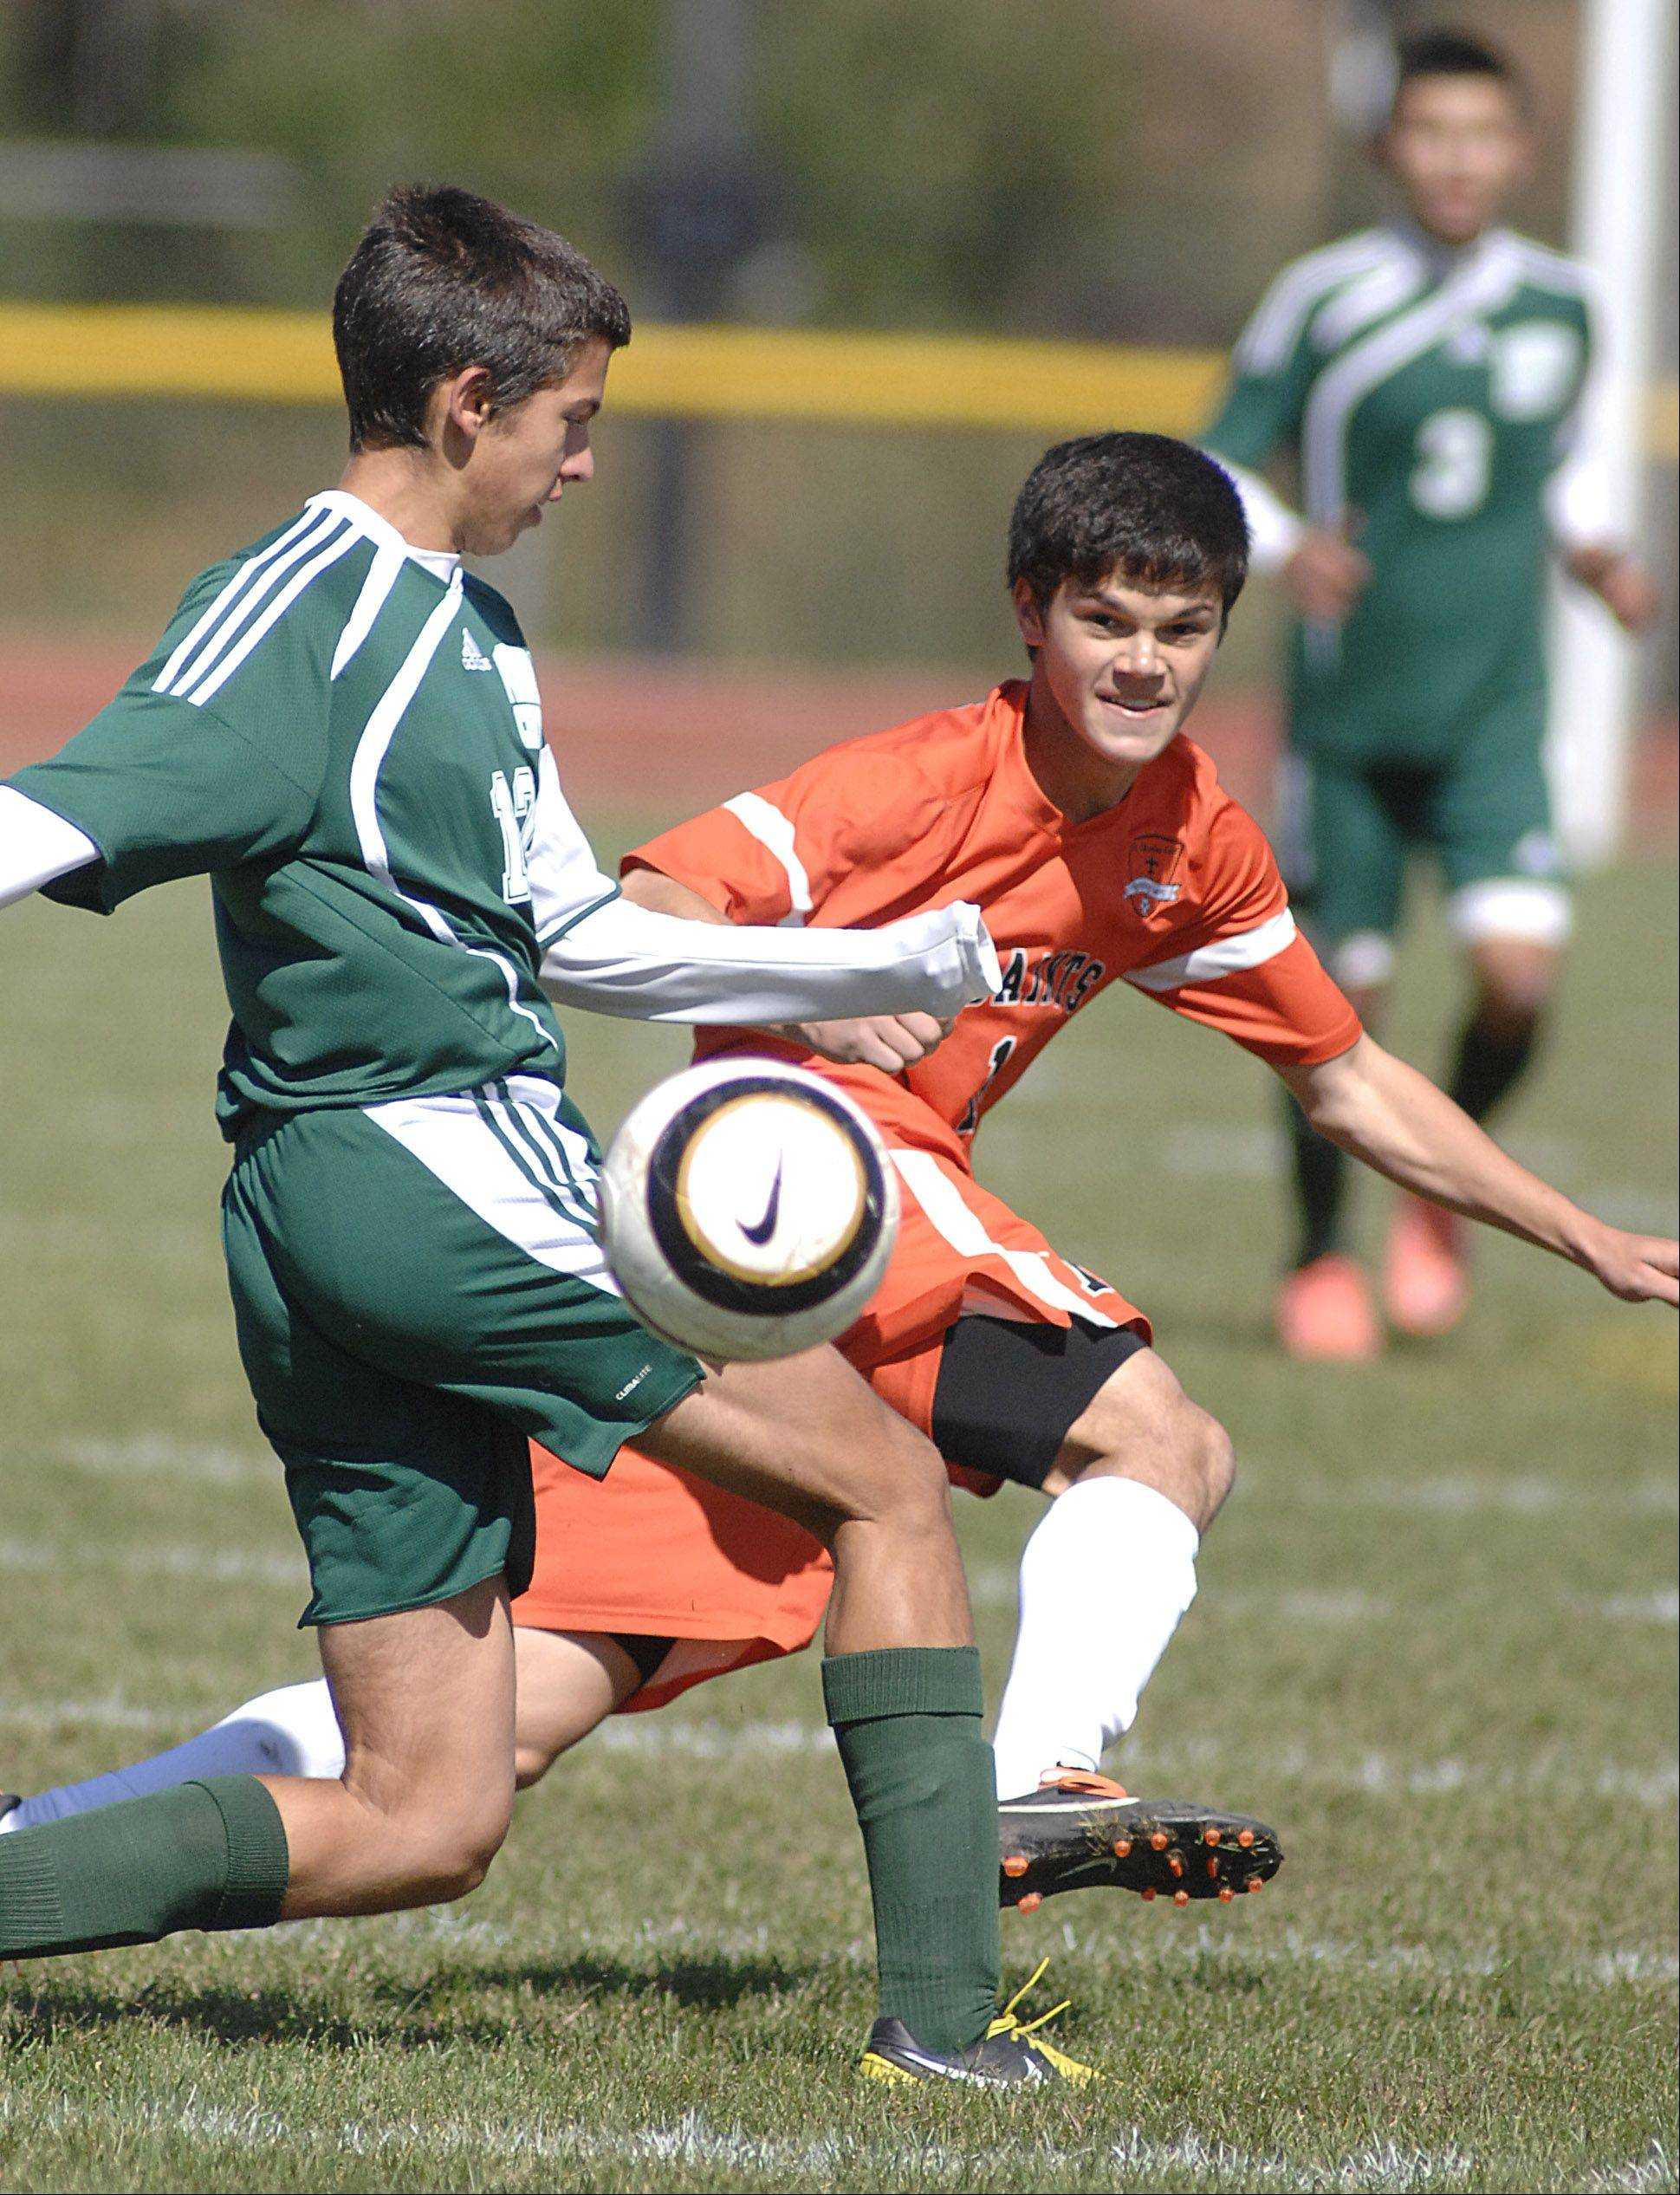 St. Charles East's Kevin Kurtz kicks the ball past an attempted leg block by Plainfield Central's Mike Giocolo in the first half on Saturday, September 22.